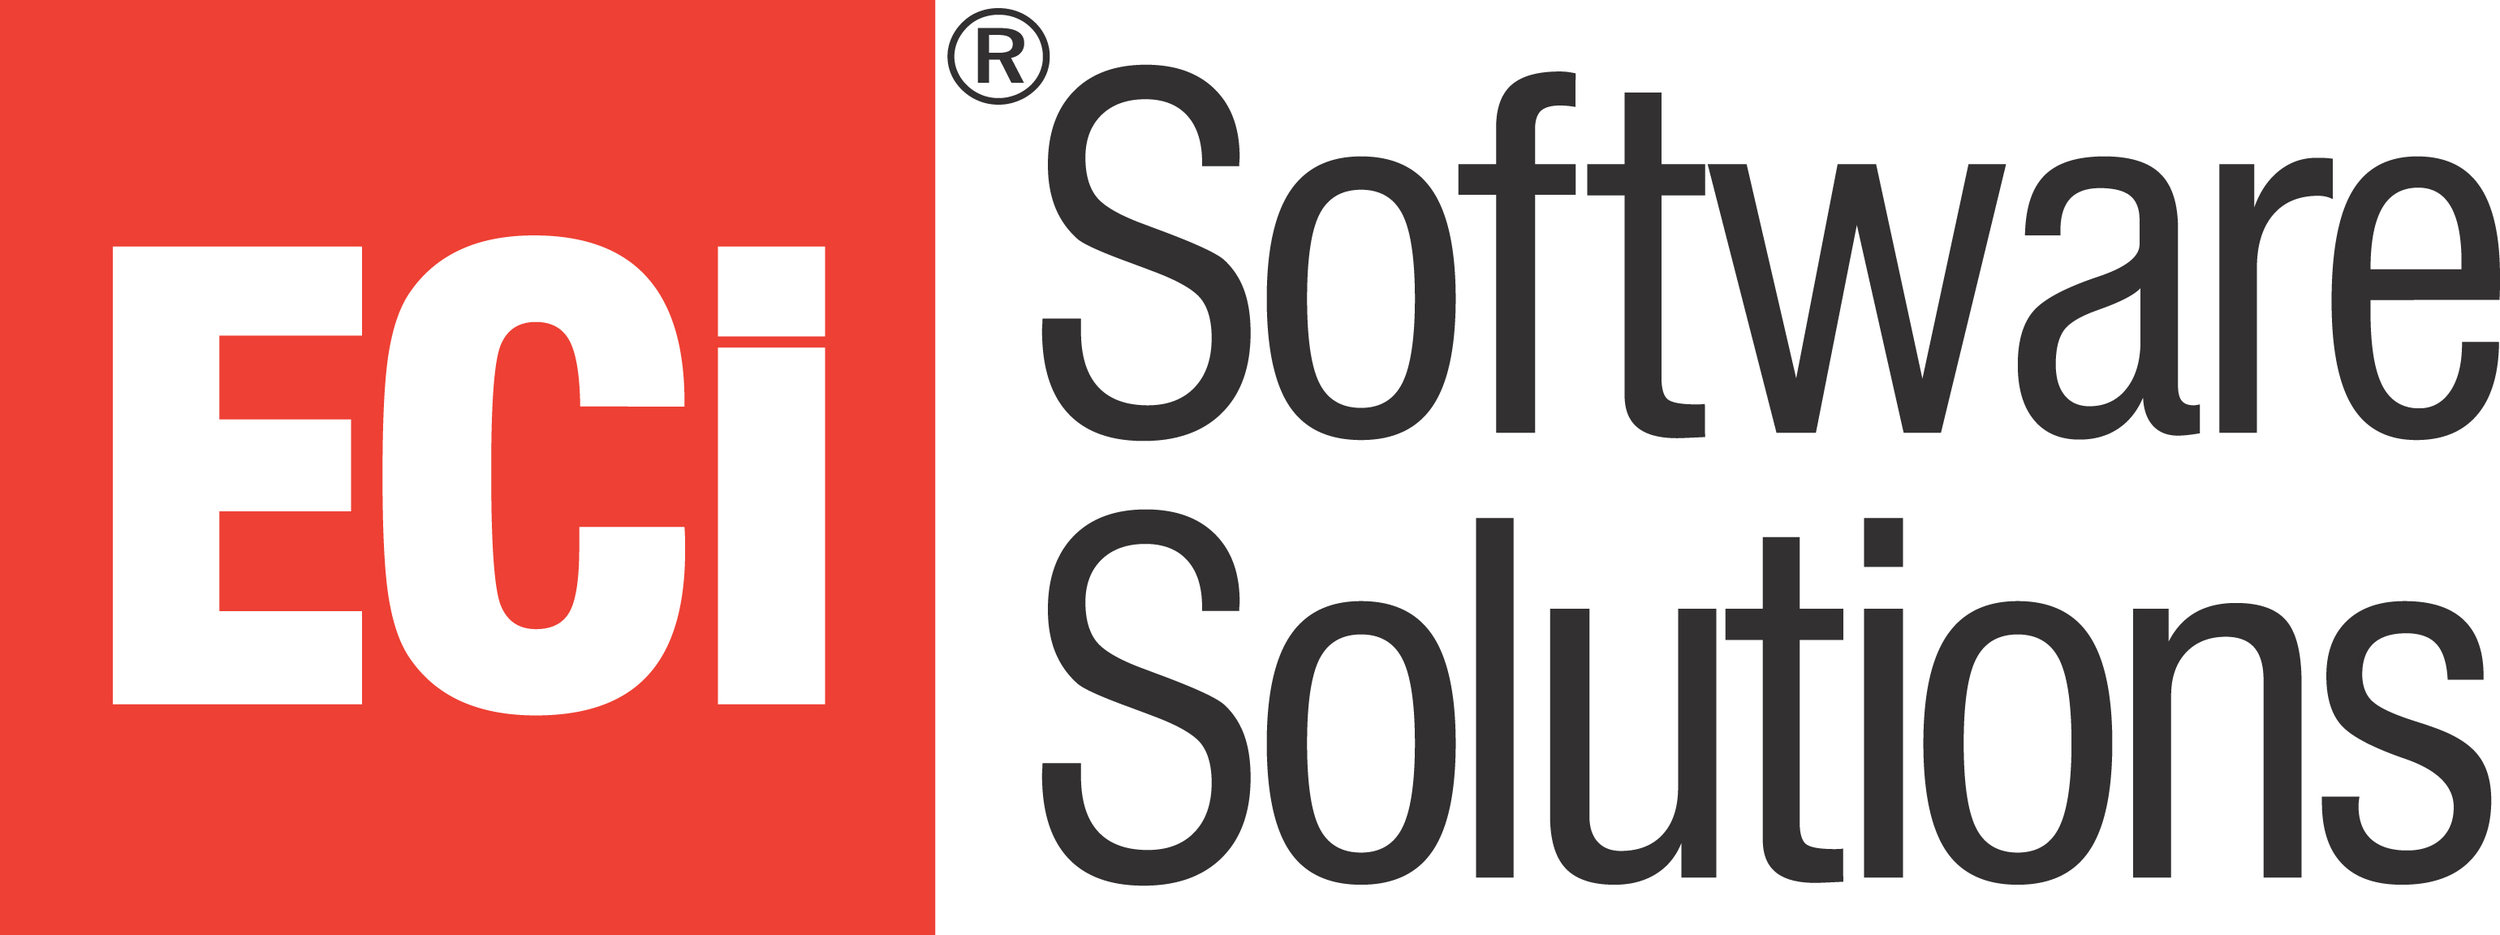 ECi-Software-Solutions-logo-NEW.jpg